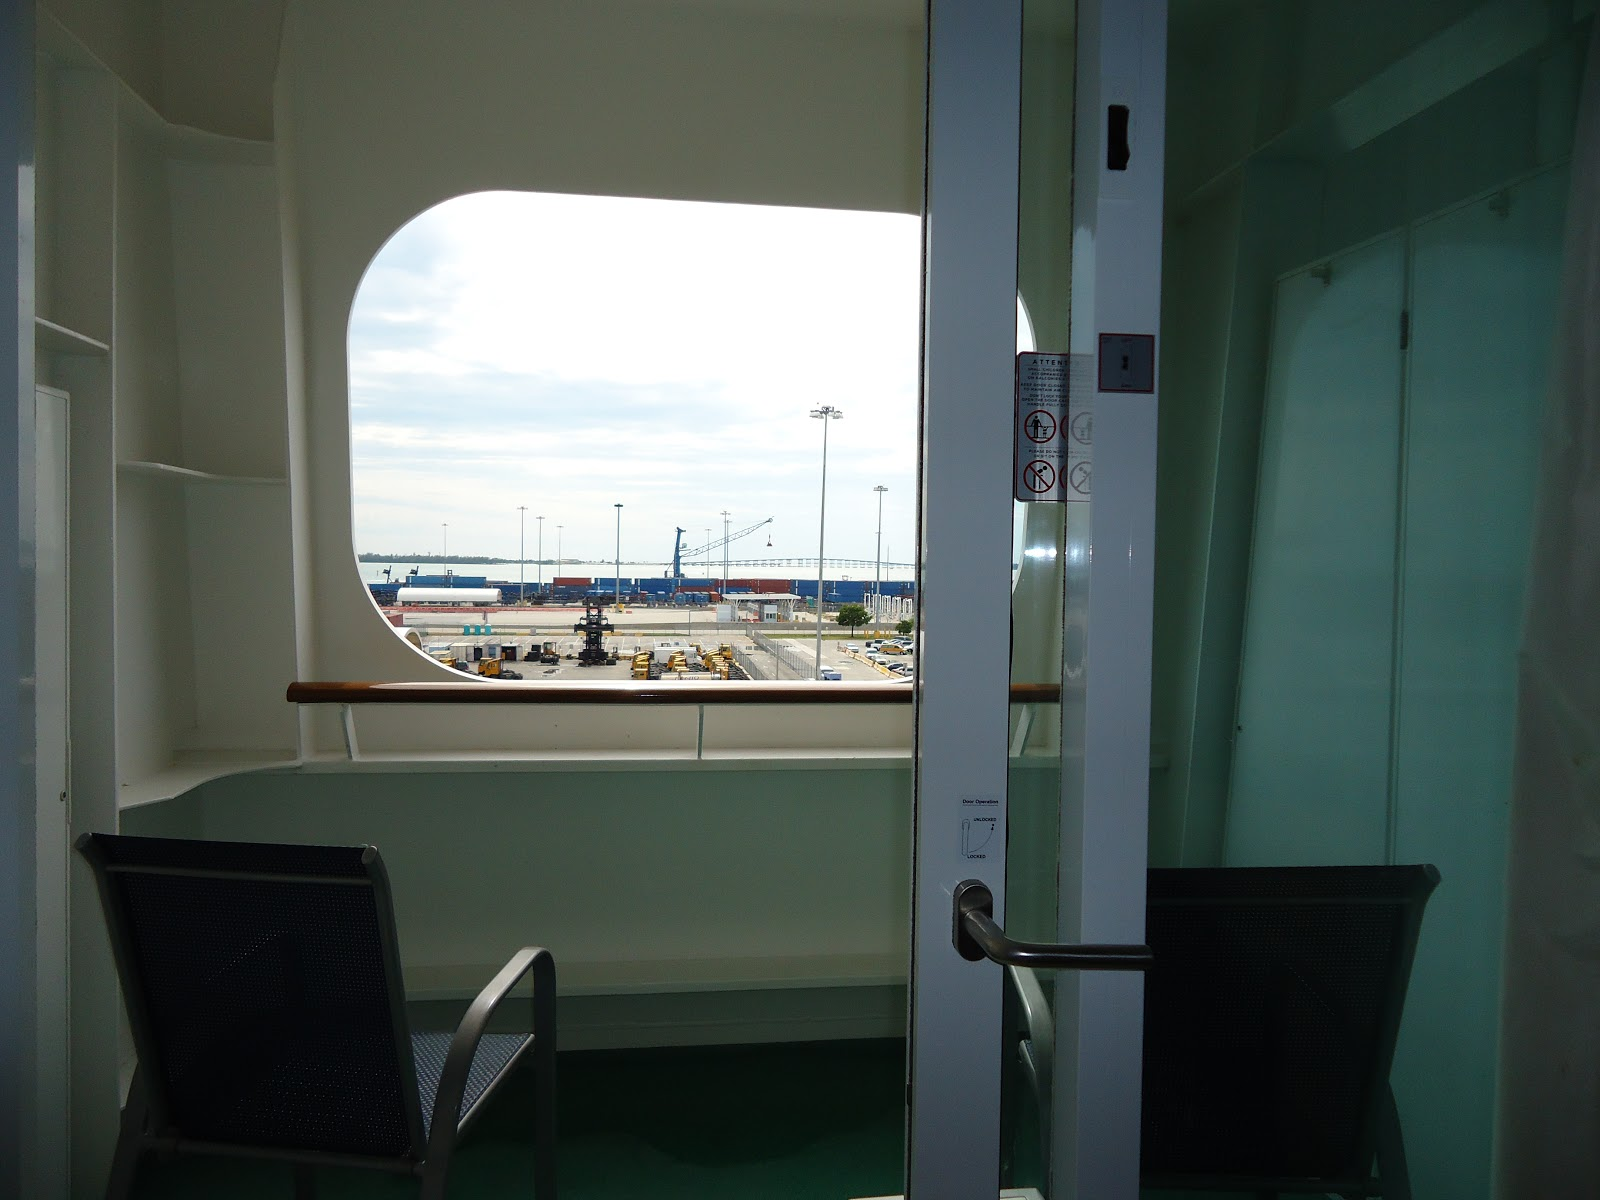 P a moore 39 s blog review norwegian ncl epic eastern for What is a balcony